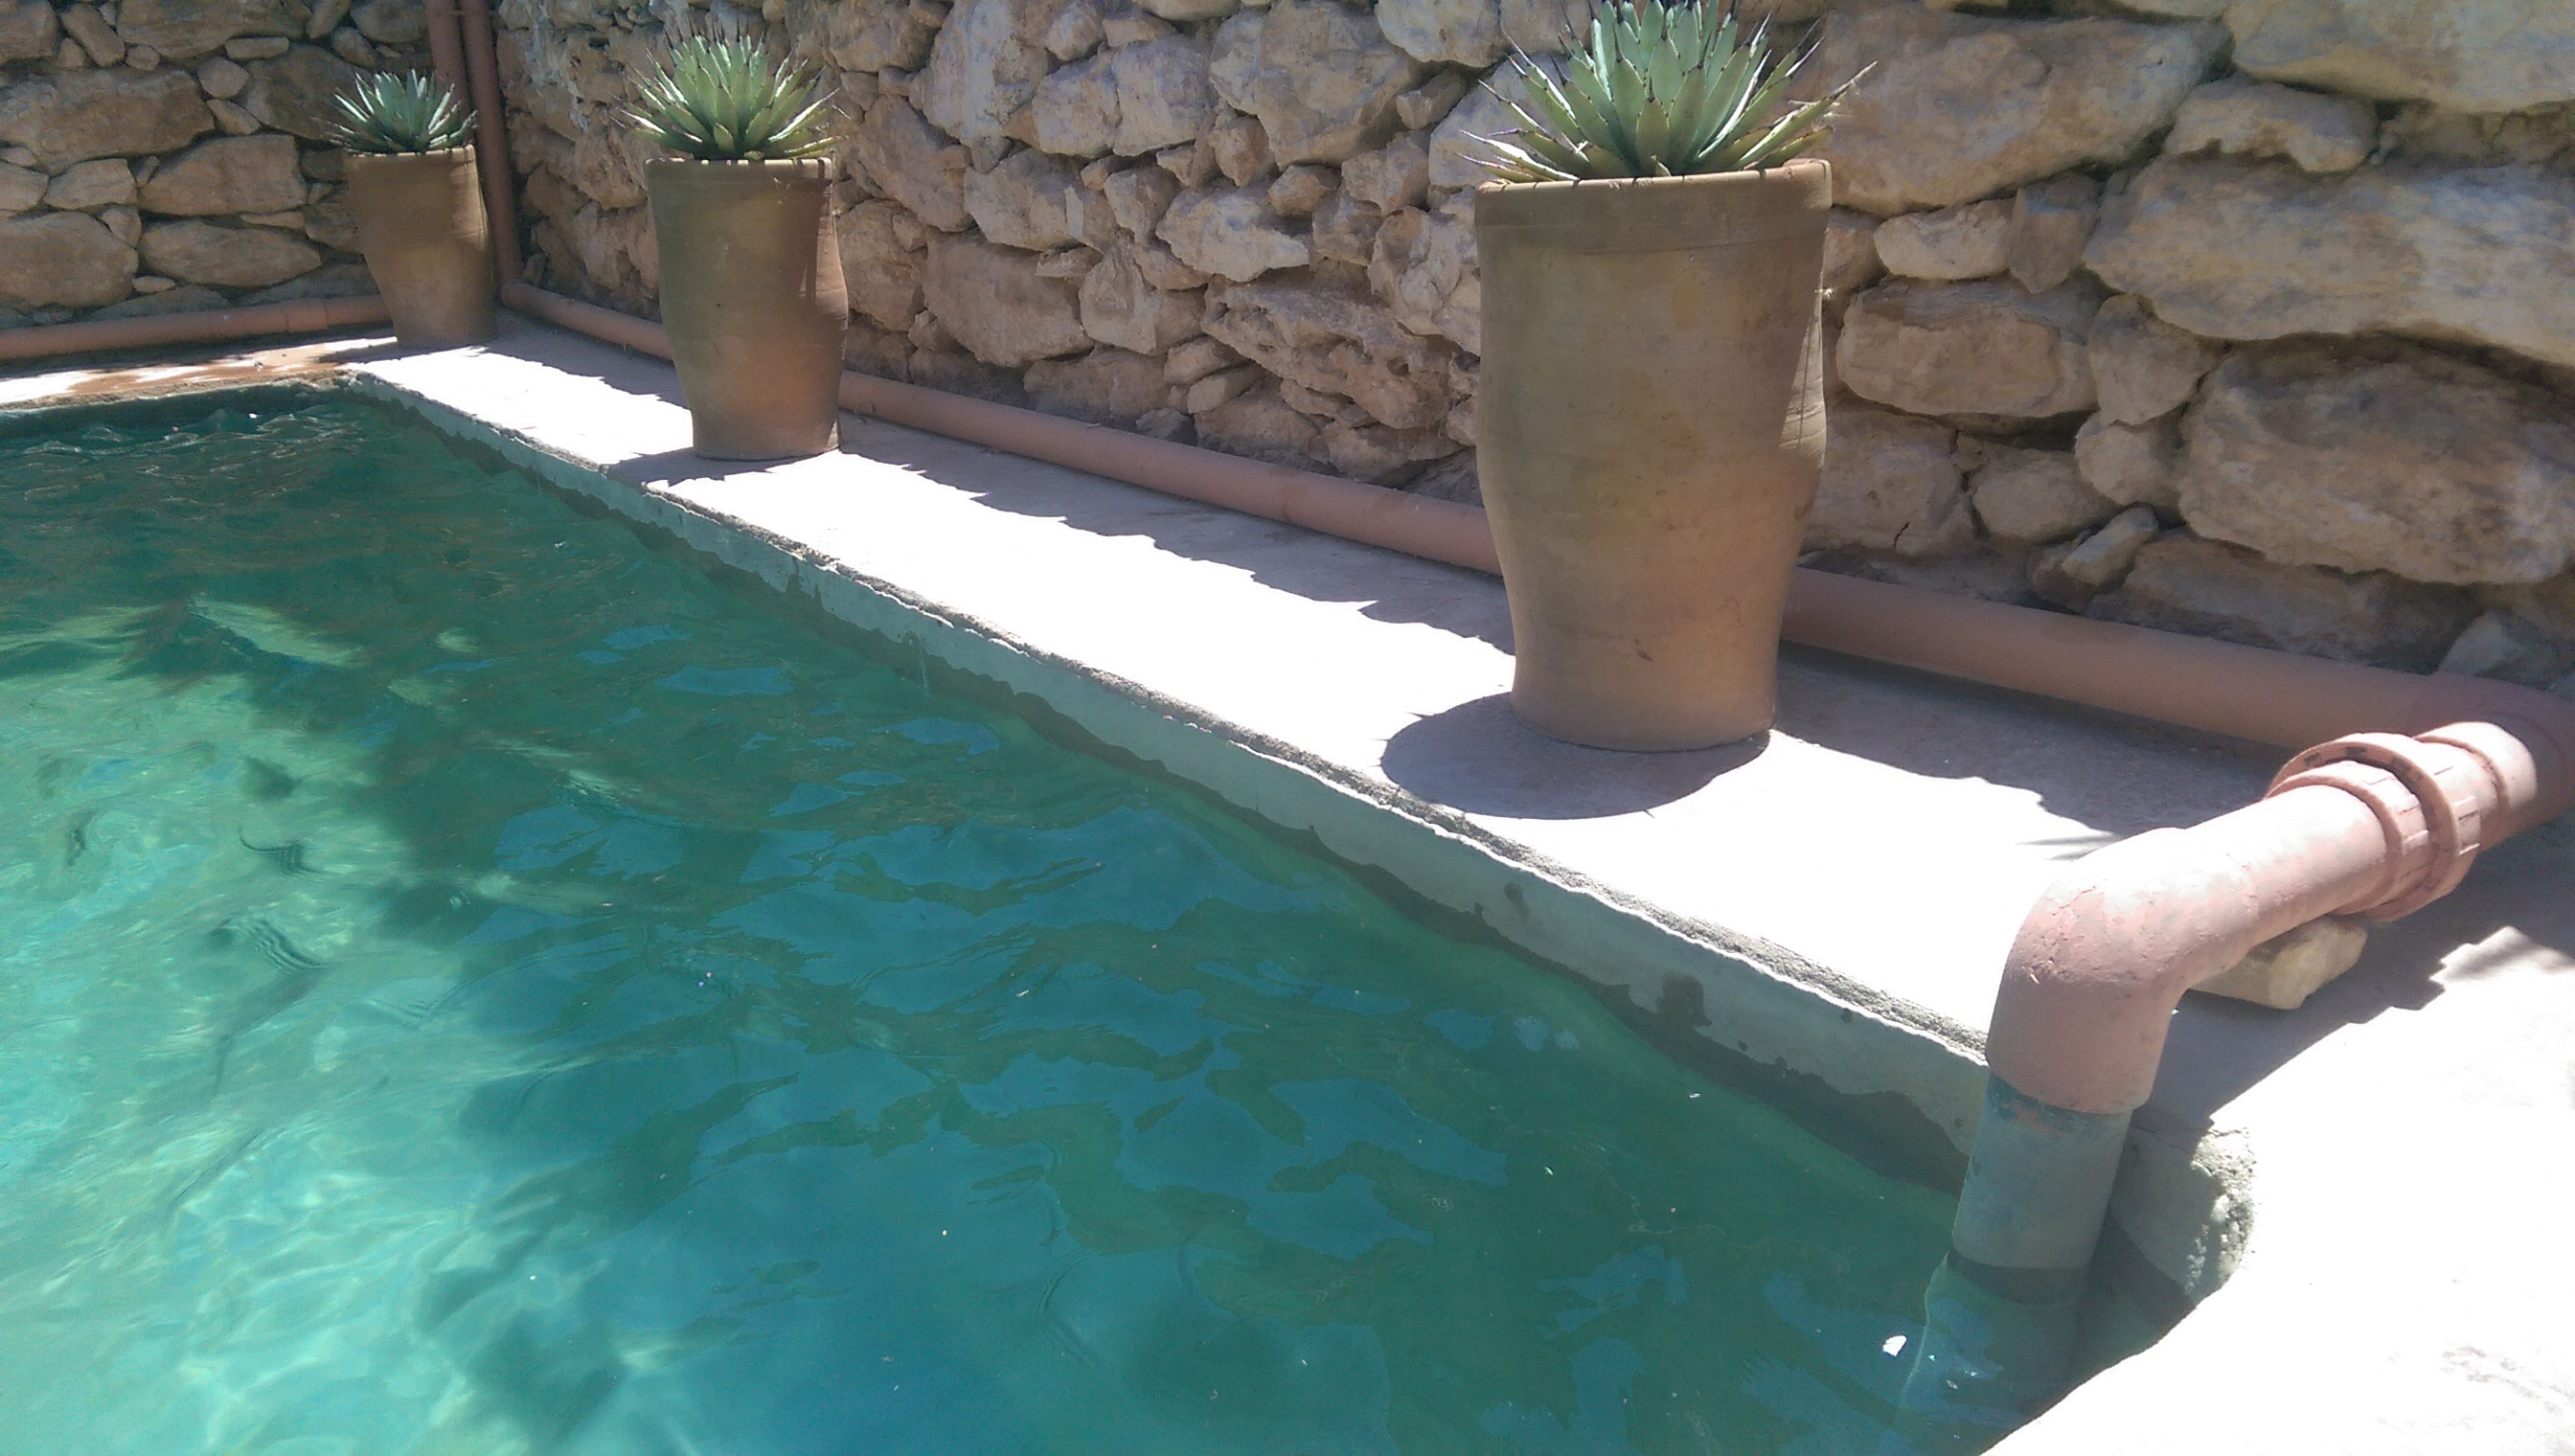 Top 10 tips for building an affordable diy natural pool for Design your own inground pool